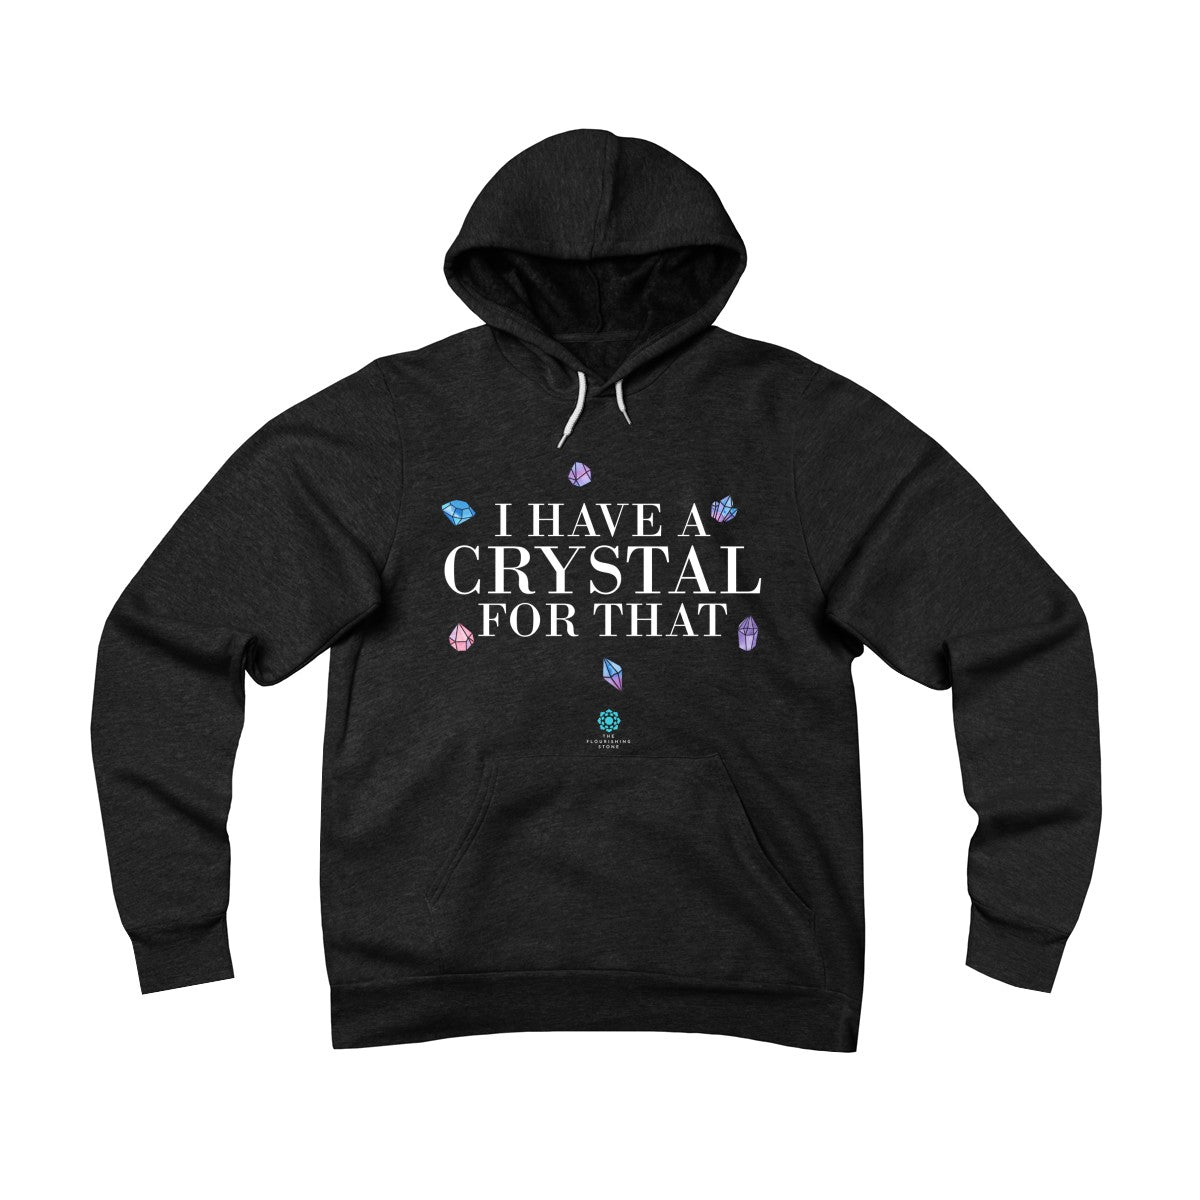 I have a Crystal for that Unisex Sponge Fleece Pullover Hoodie